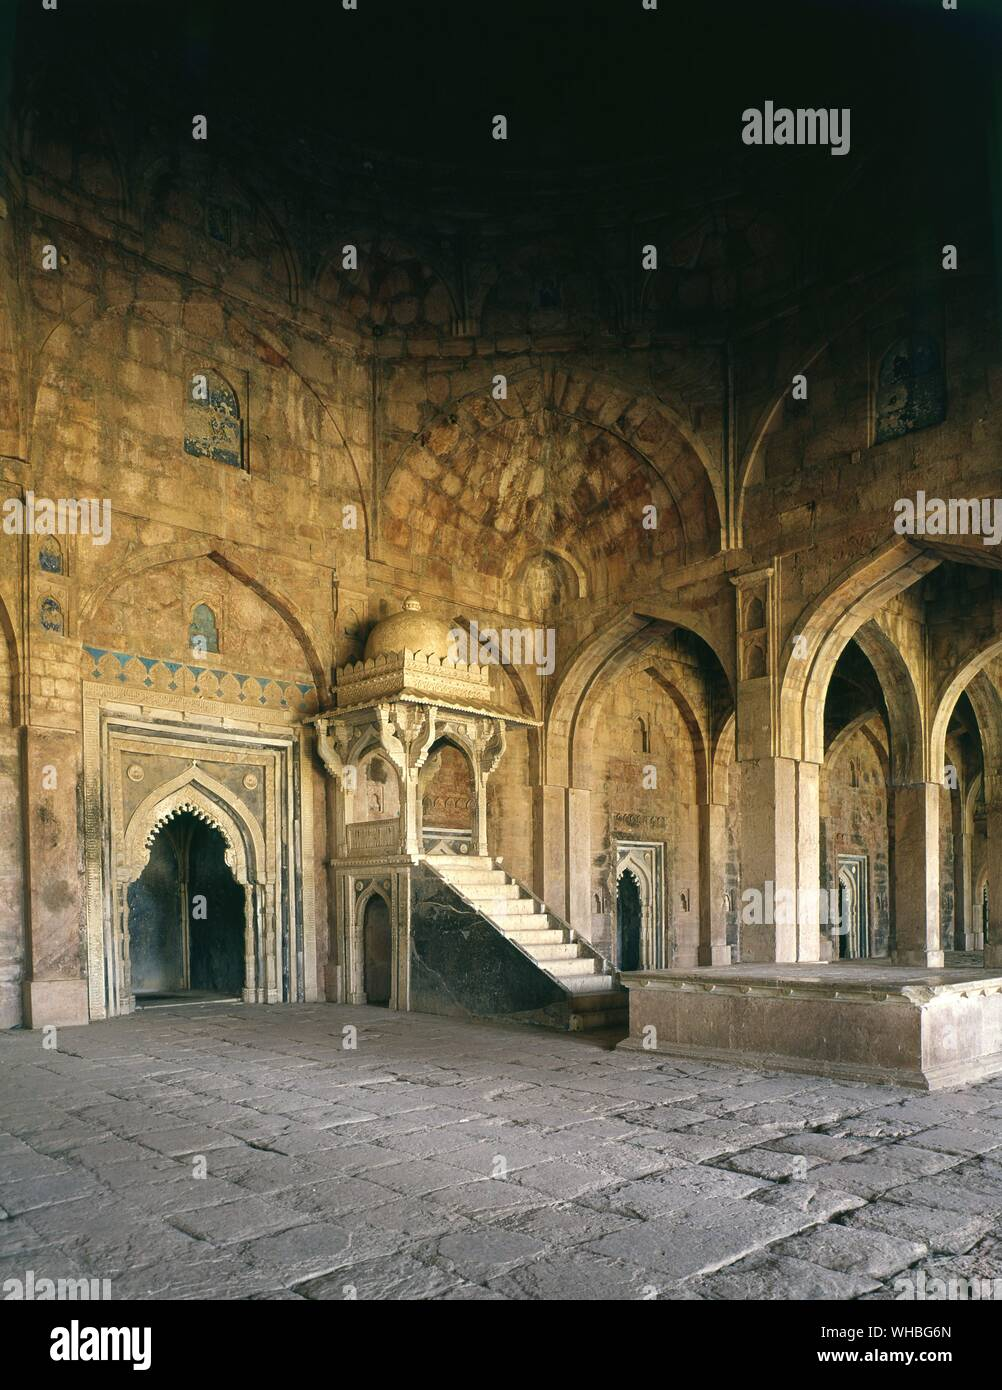 Friday Mosque at Mandu - interior - Mandu, or Mandavgarh, is a ruined city in the Dhar district in the Malwa region of western Madhya Pradesh state, central India. The oldest mosque dates from 1405 - the finest being the Jama Masjid or great mosque, a notable example of Pashtun architecture.. Stock Photo